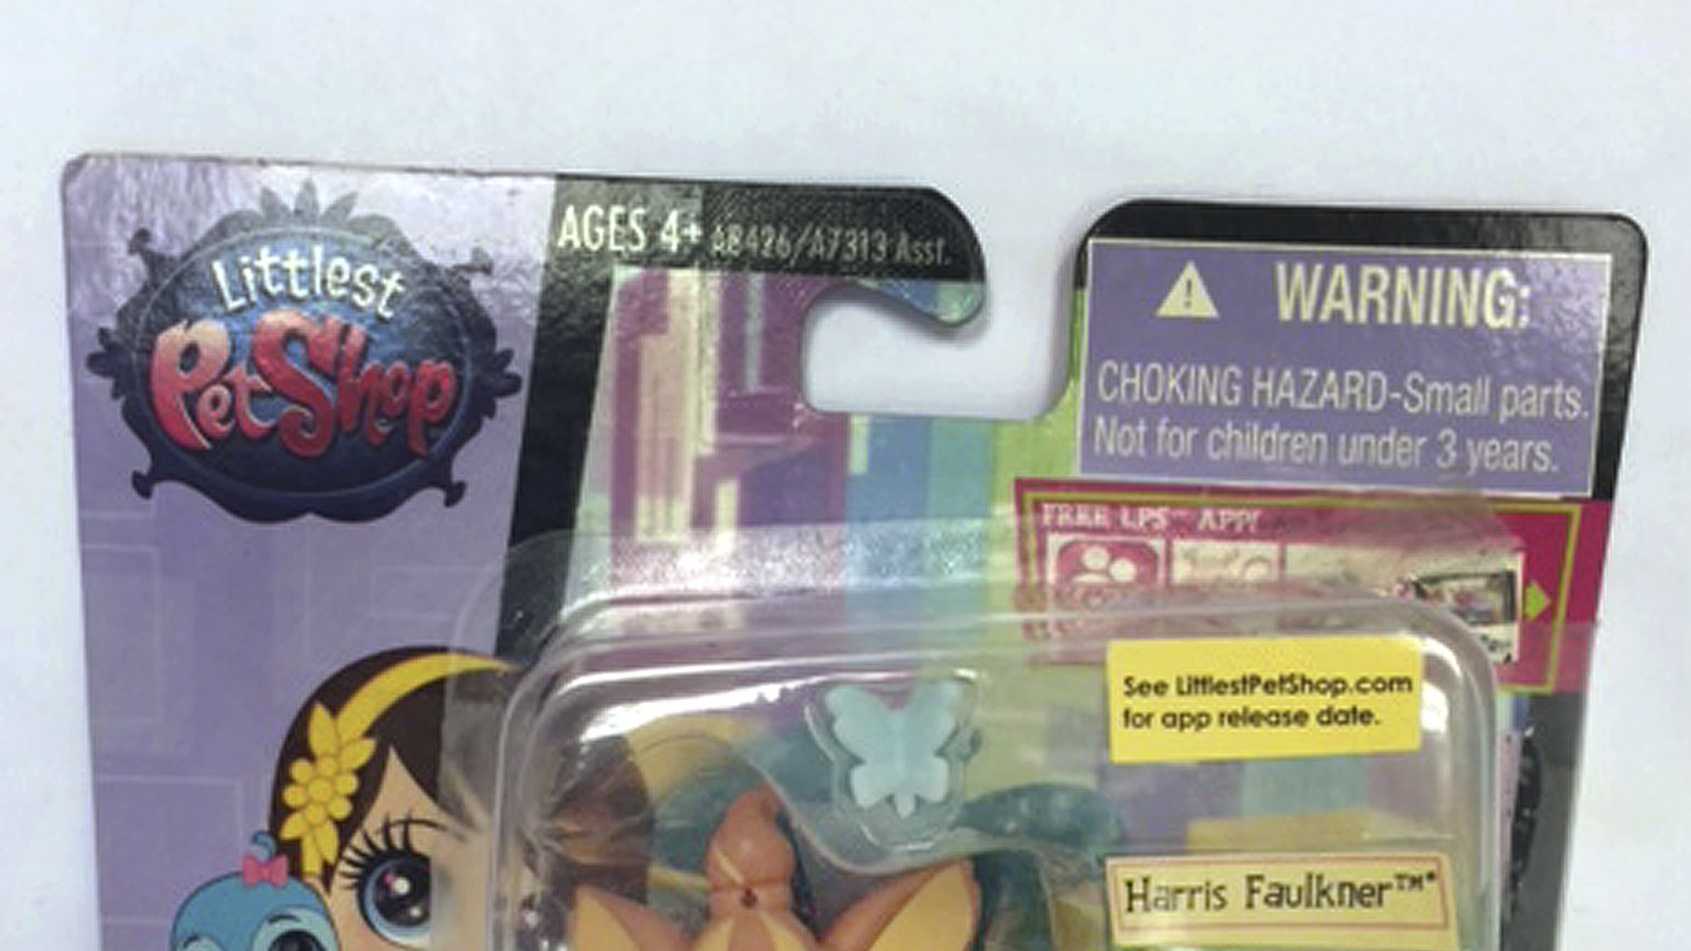 "This June 23, 2015 photo released by the Hogan Lovells law firm shows toys from Hasbro's ""Littlest Pet Shop"" line in New York, including characters named Benson Detwyler and Harris Faulkner. Fox News anchor Harris Faulkner sued Hasbro Monday, Aug. 31, 2015, in federal court in New Jersey for more than $5 million over the toy that shares her name. Harris' suit claims Hasbro wrongfully appropriated her name and persona with its plastic ""Harris Faulkner"" hamster. ("